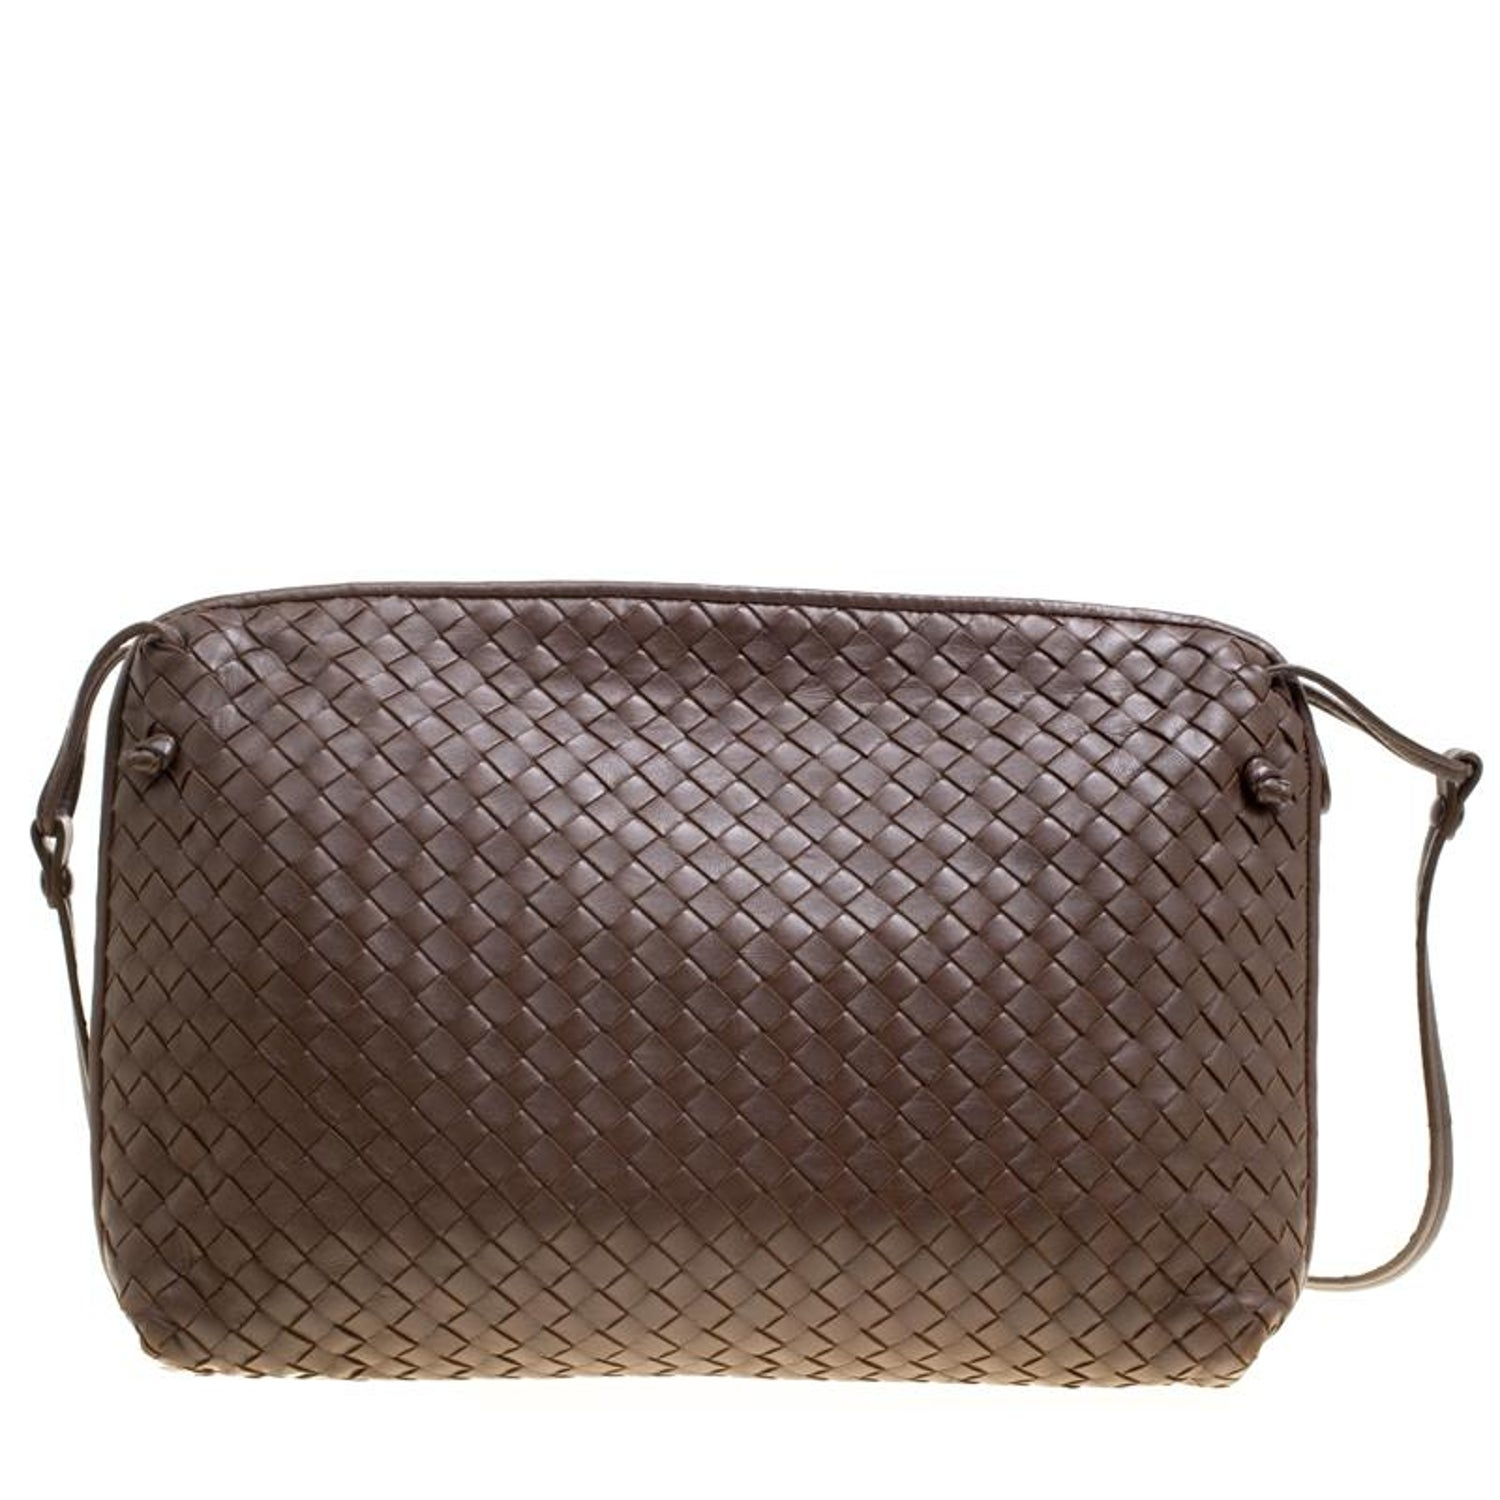 Bottega Veneta Brown Intrecciato Leather Nodini Shoulder Bag For Sale at  1stdibs 07708bbaf4cfd